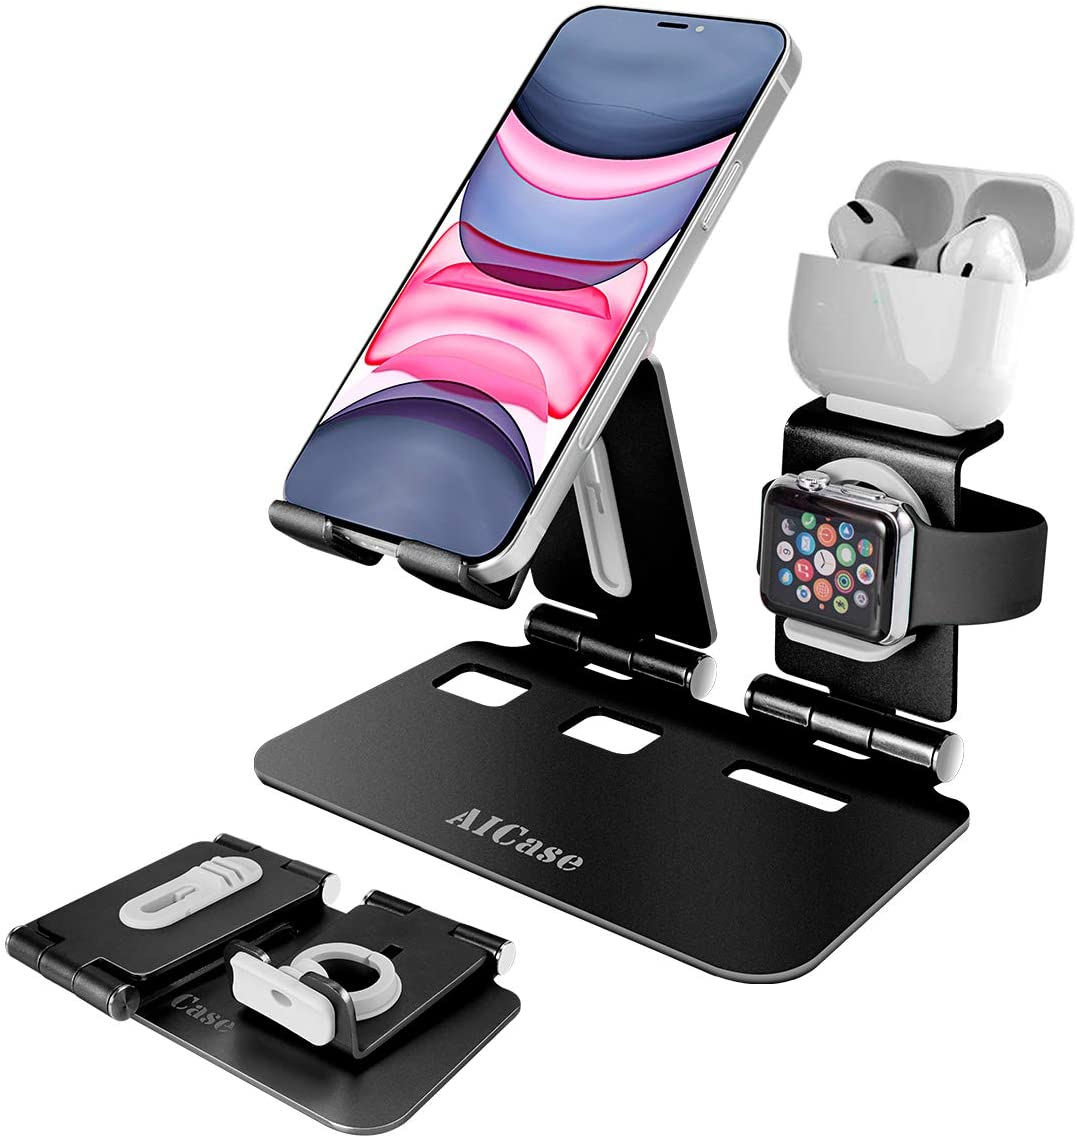 AICase 3 in 1 Aluminum Charging Stand Compatible with iWatch, AirPods 1/2/Pro and iPhone